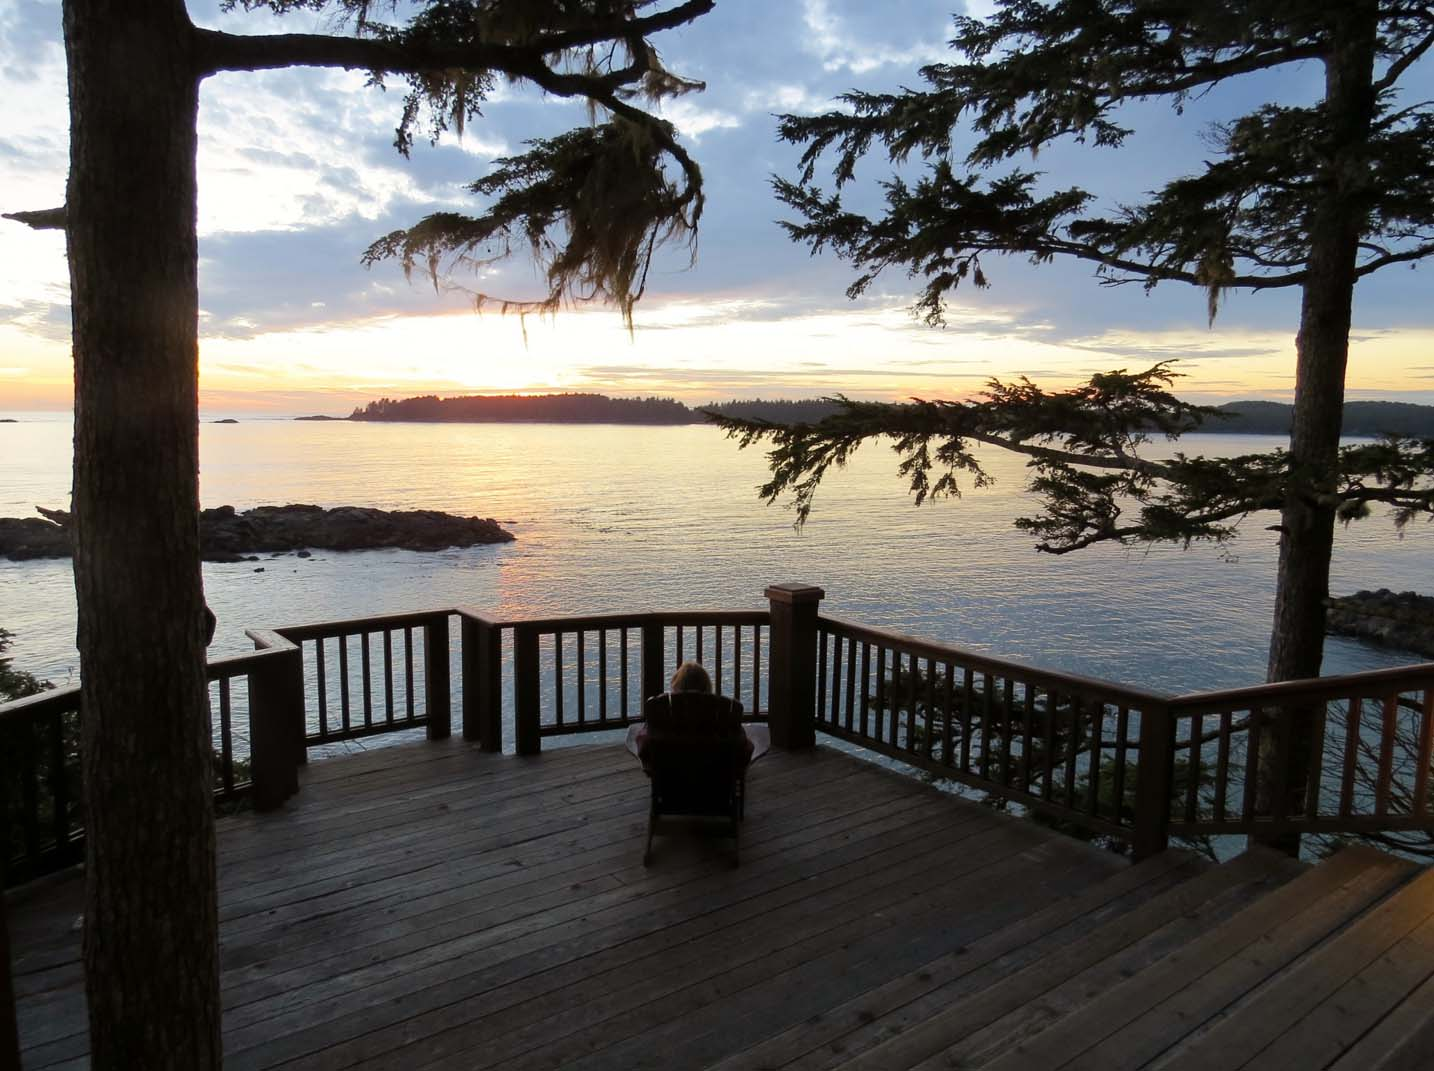 Sunset at Middle Beach Lodge, Tofino